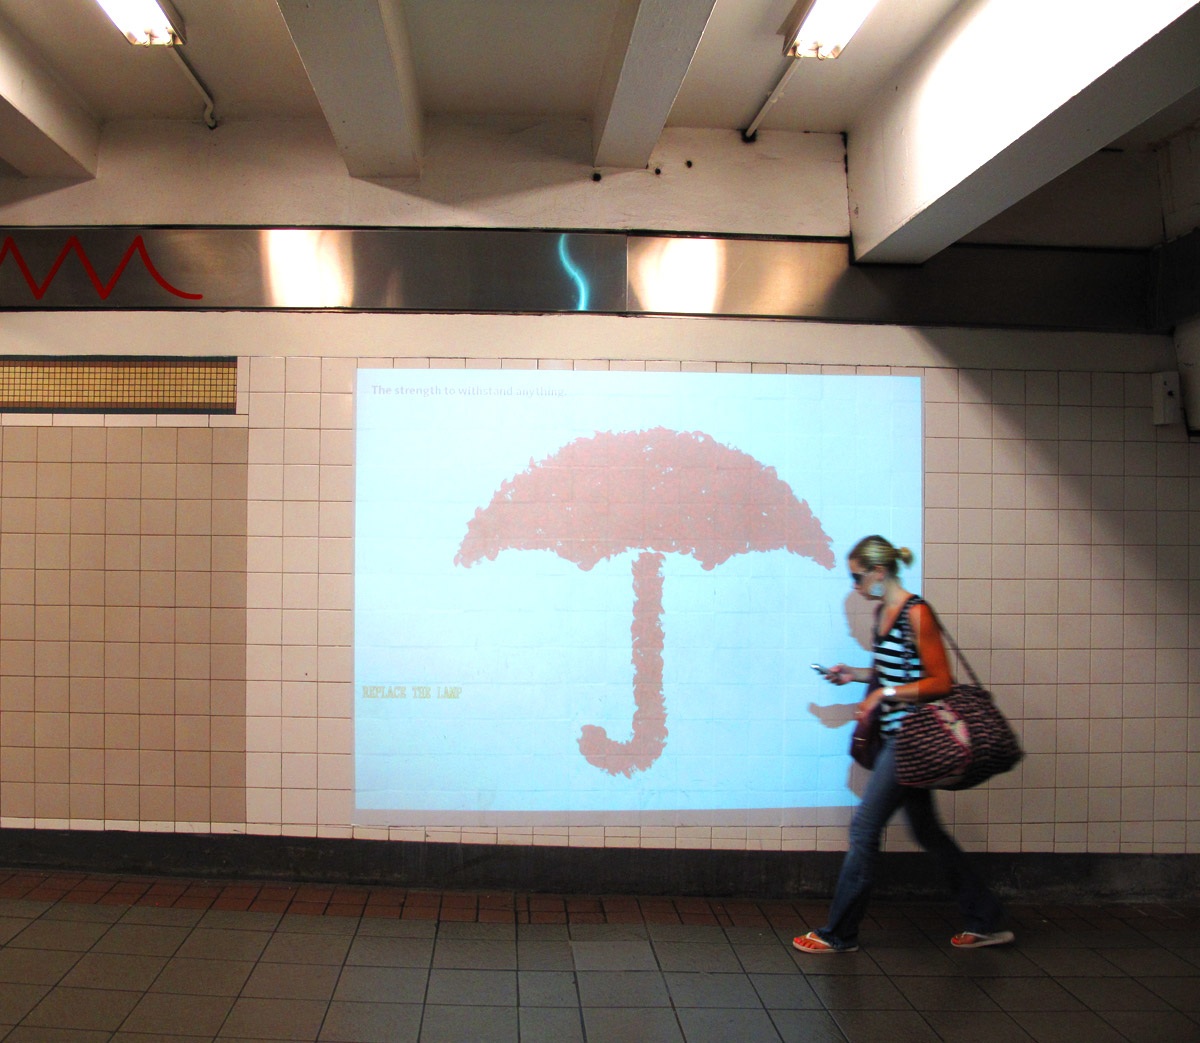 Travelers Interactive WallFX Ads